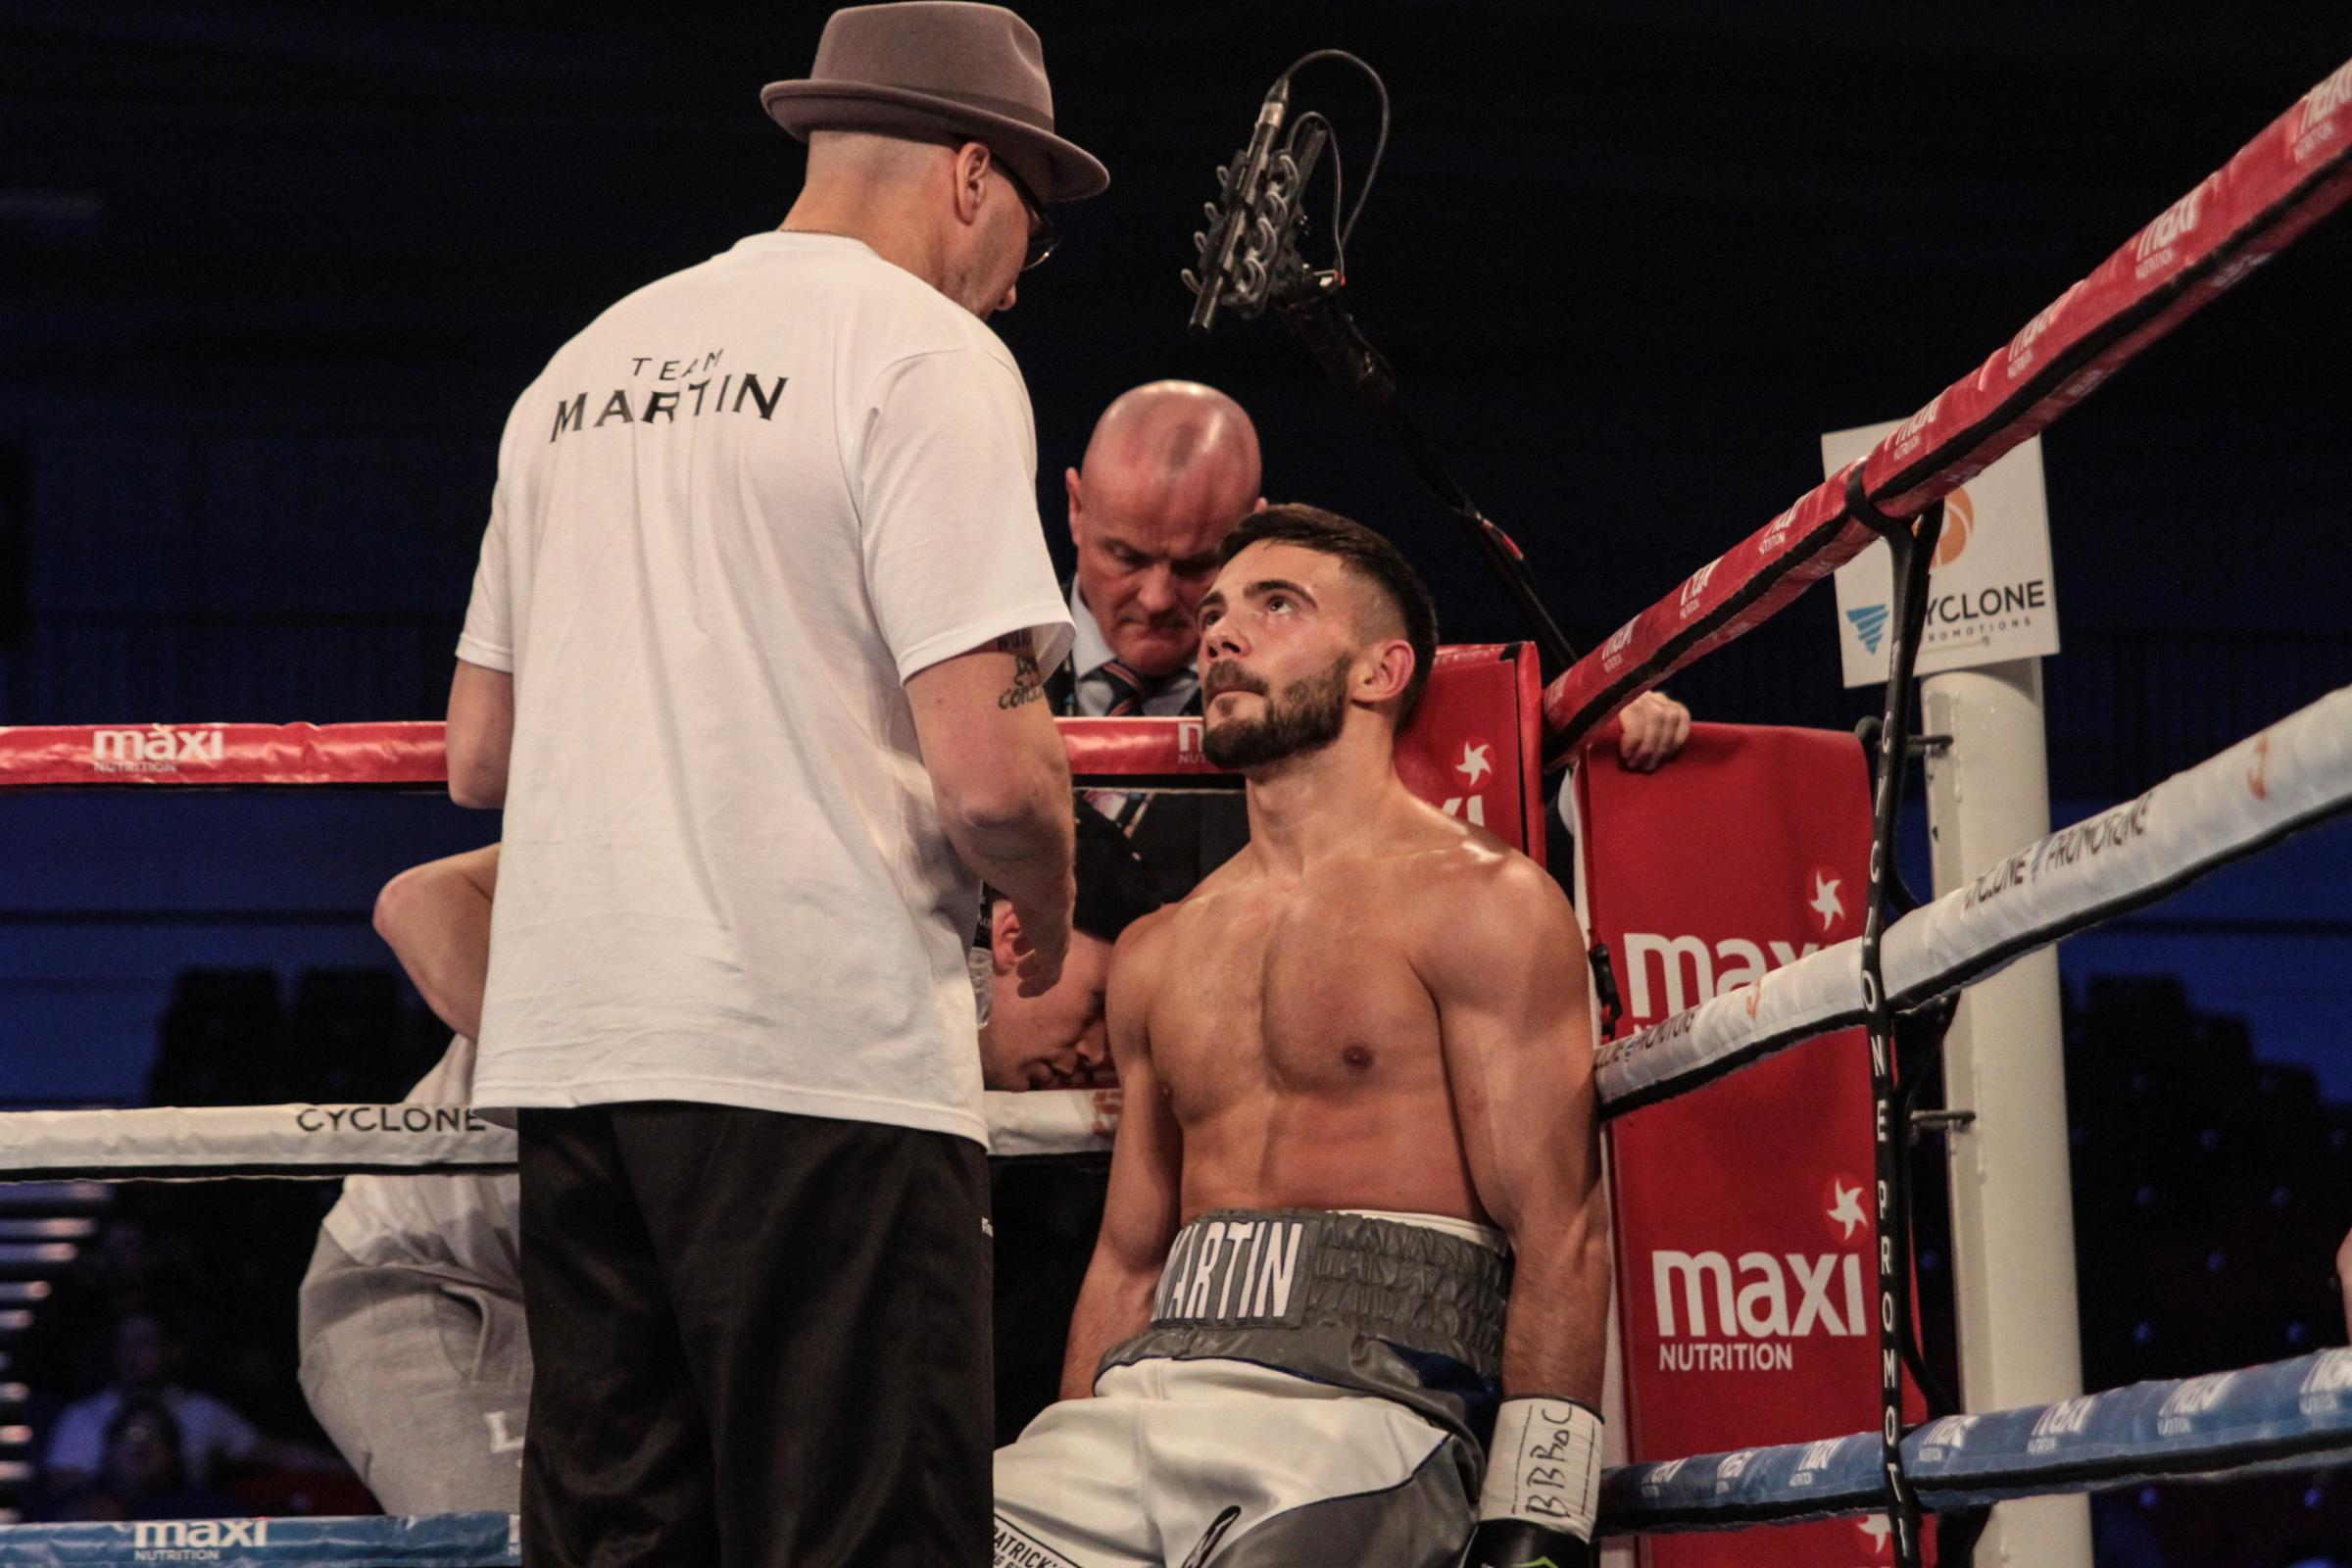 Ryan Martin, pictured during last year's 'All Or Nothing' show at the Leicester Arena, will top the bill on Saturday when standing toe-to-toe with Edvinas Puplauskas.